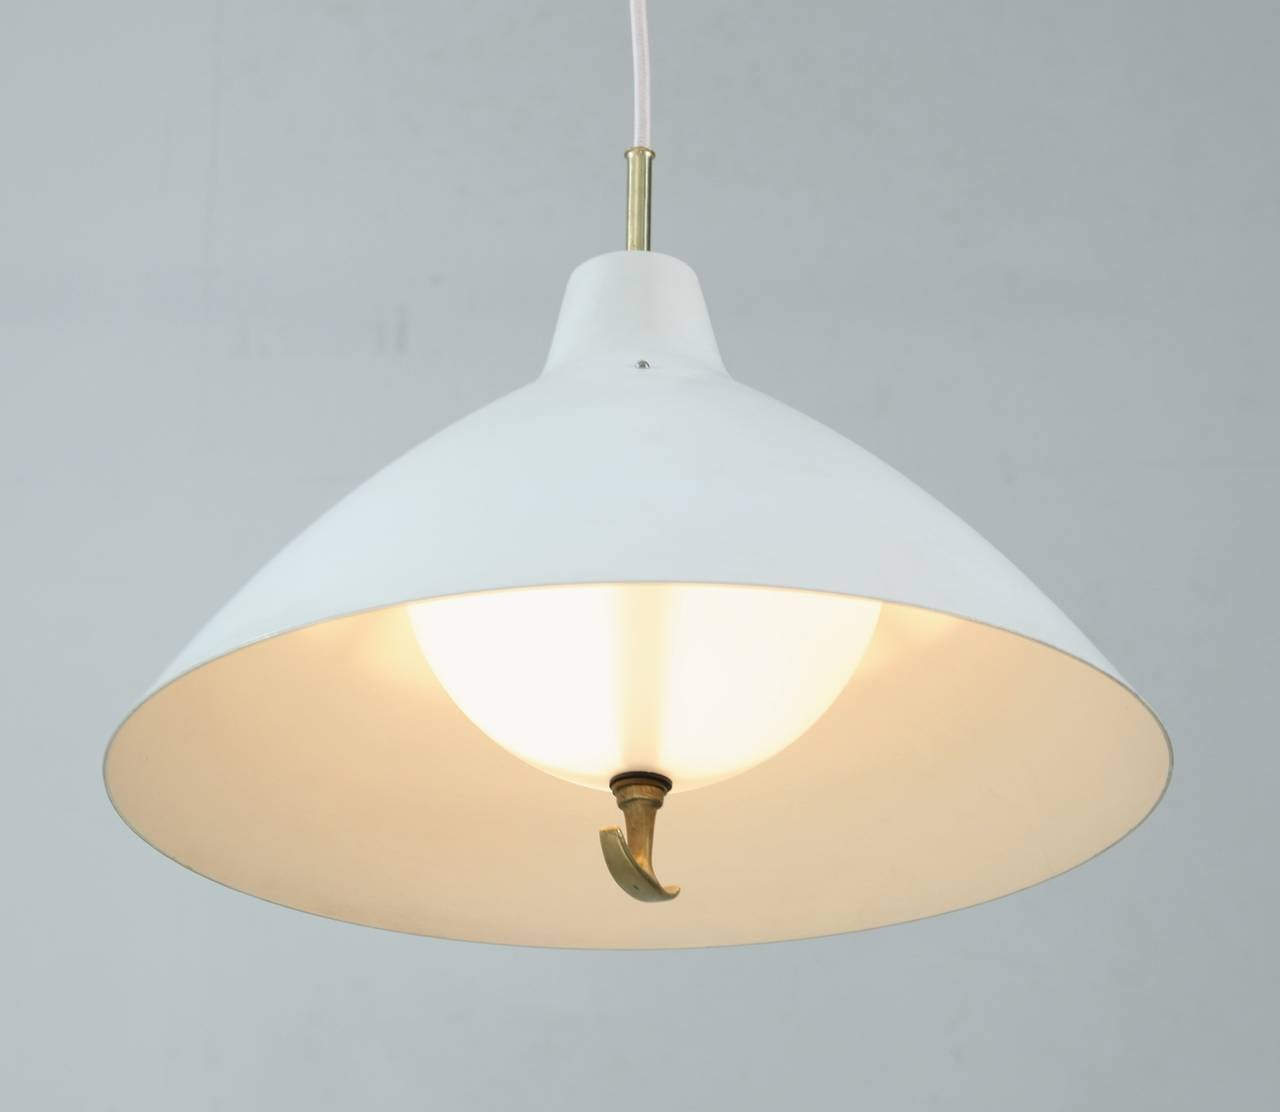 White Lacquered Metal ASEA Pendant Lamp with a Counterweight, Sweden, 1950s In Good Condition For Sale In Maastricht, NL